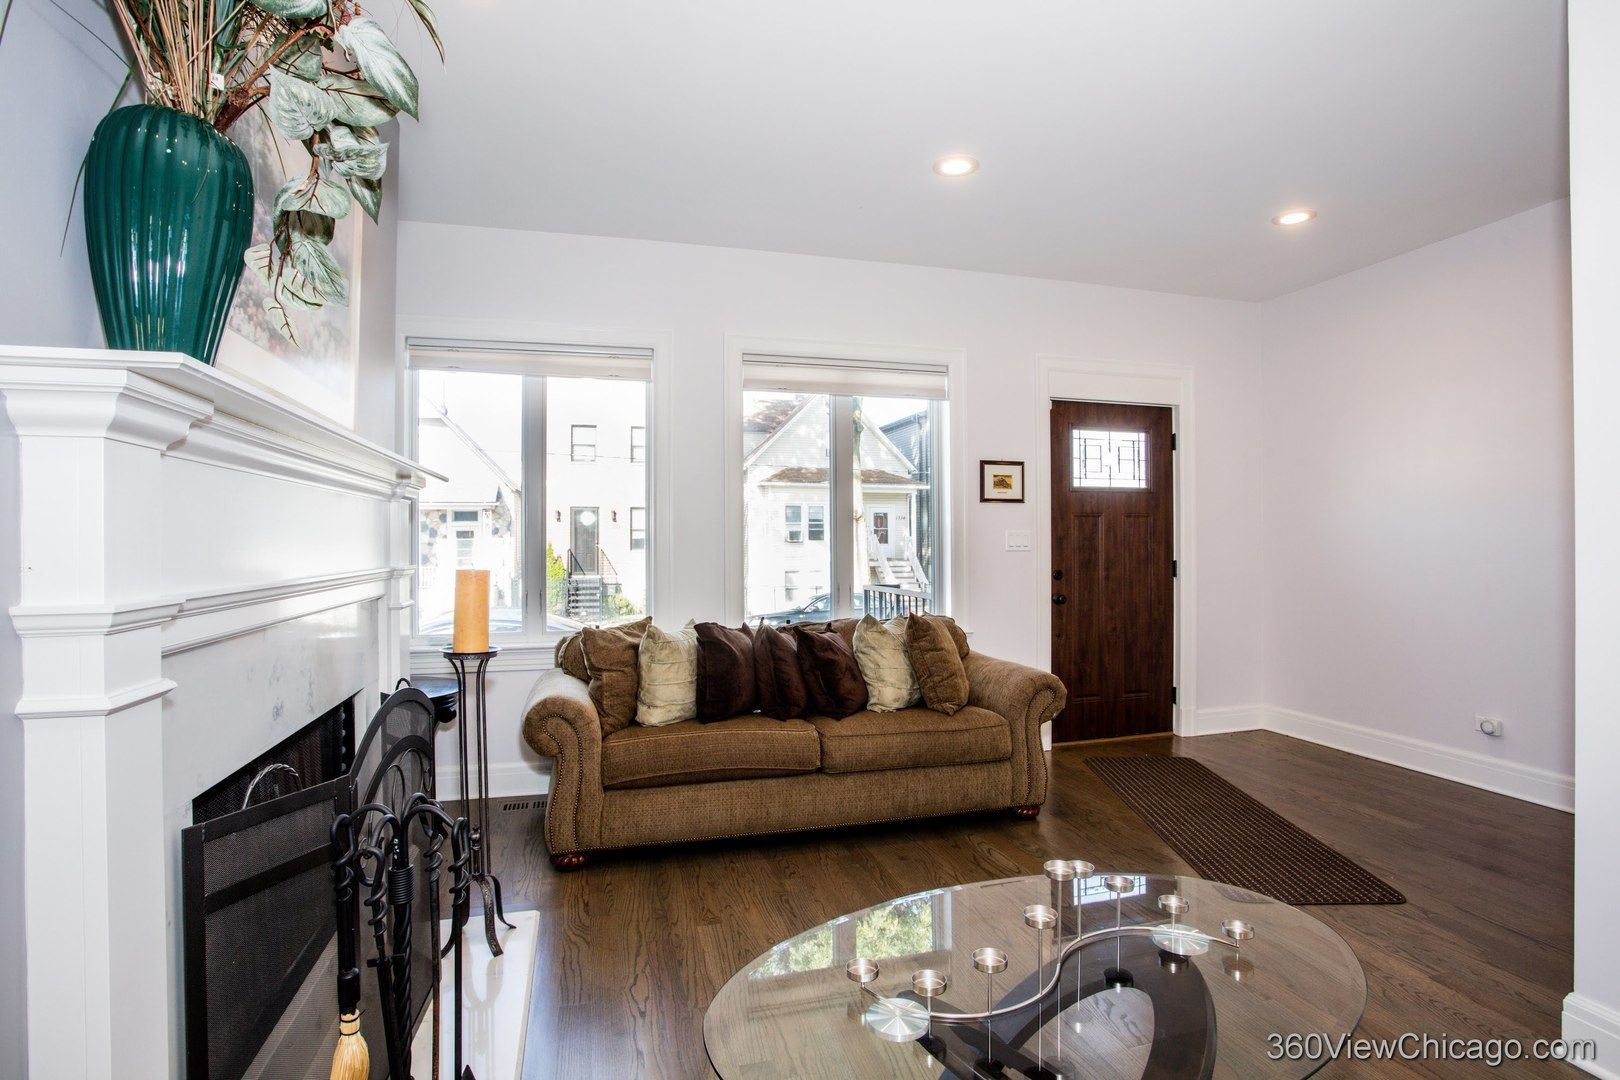 Photo 4: Photos: 1733 Troy Street in Chicago: CHI - Humboldt Park Residential for sale ()  : MLS®# 10911567